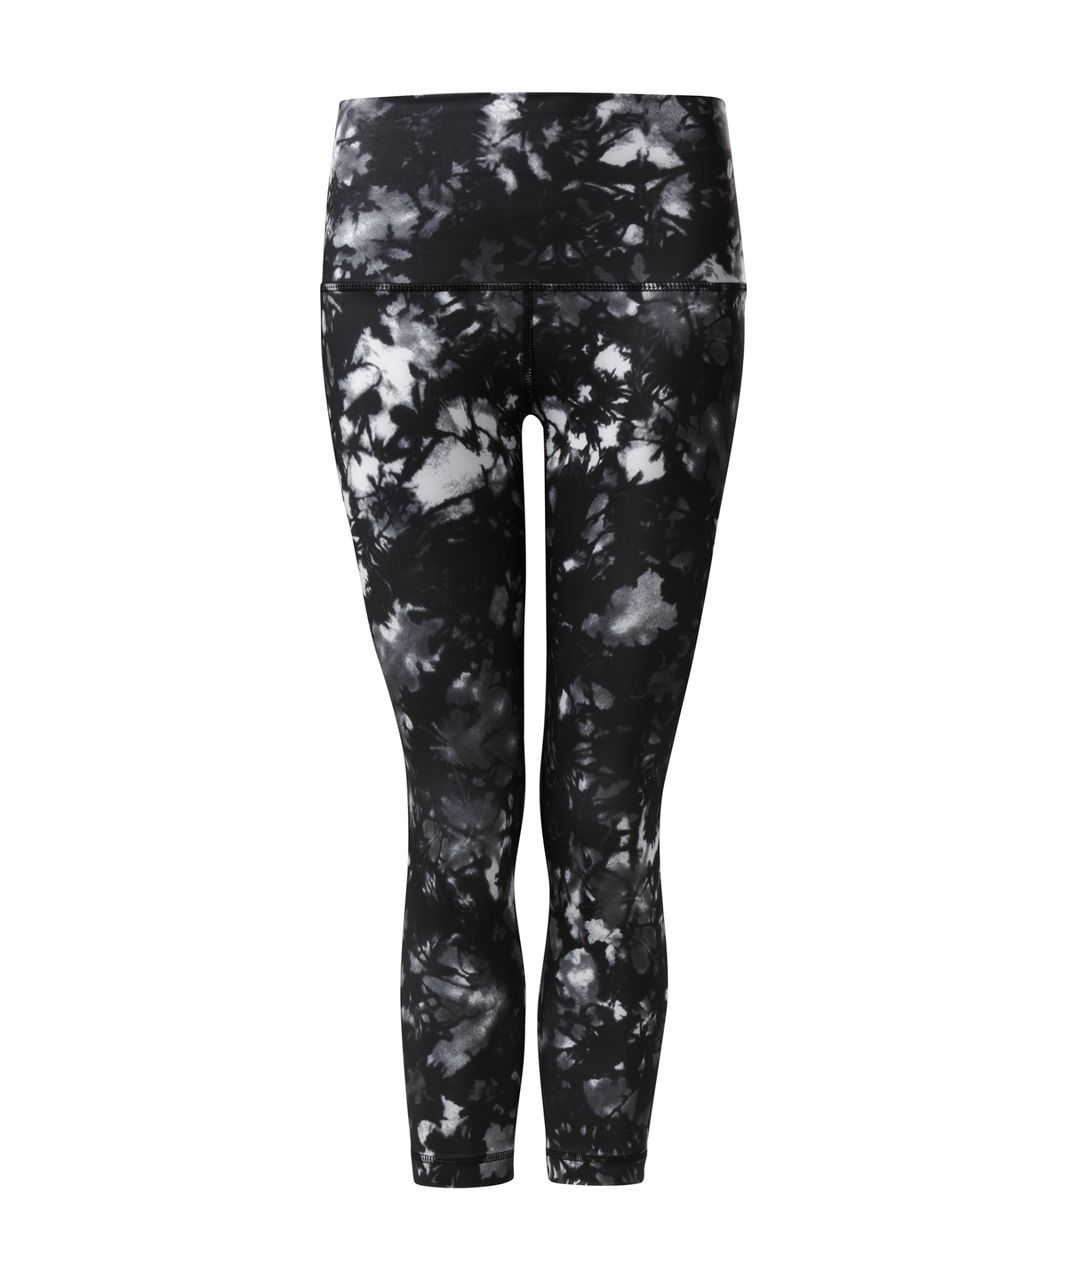 Lululemon Wunder Under Crop (Hi-Rise) - Dusk Dye White Black